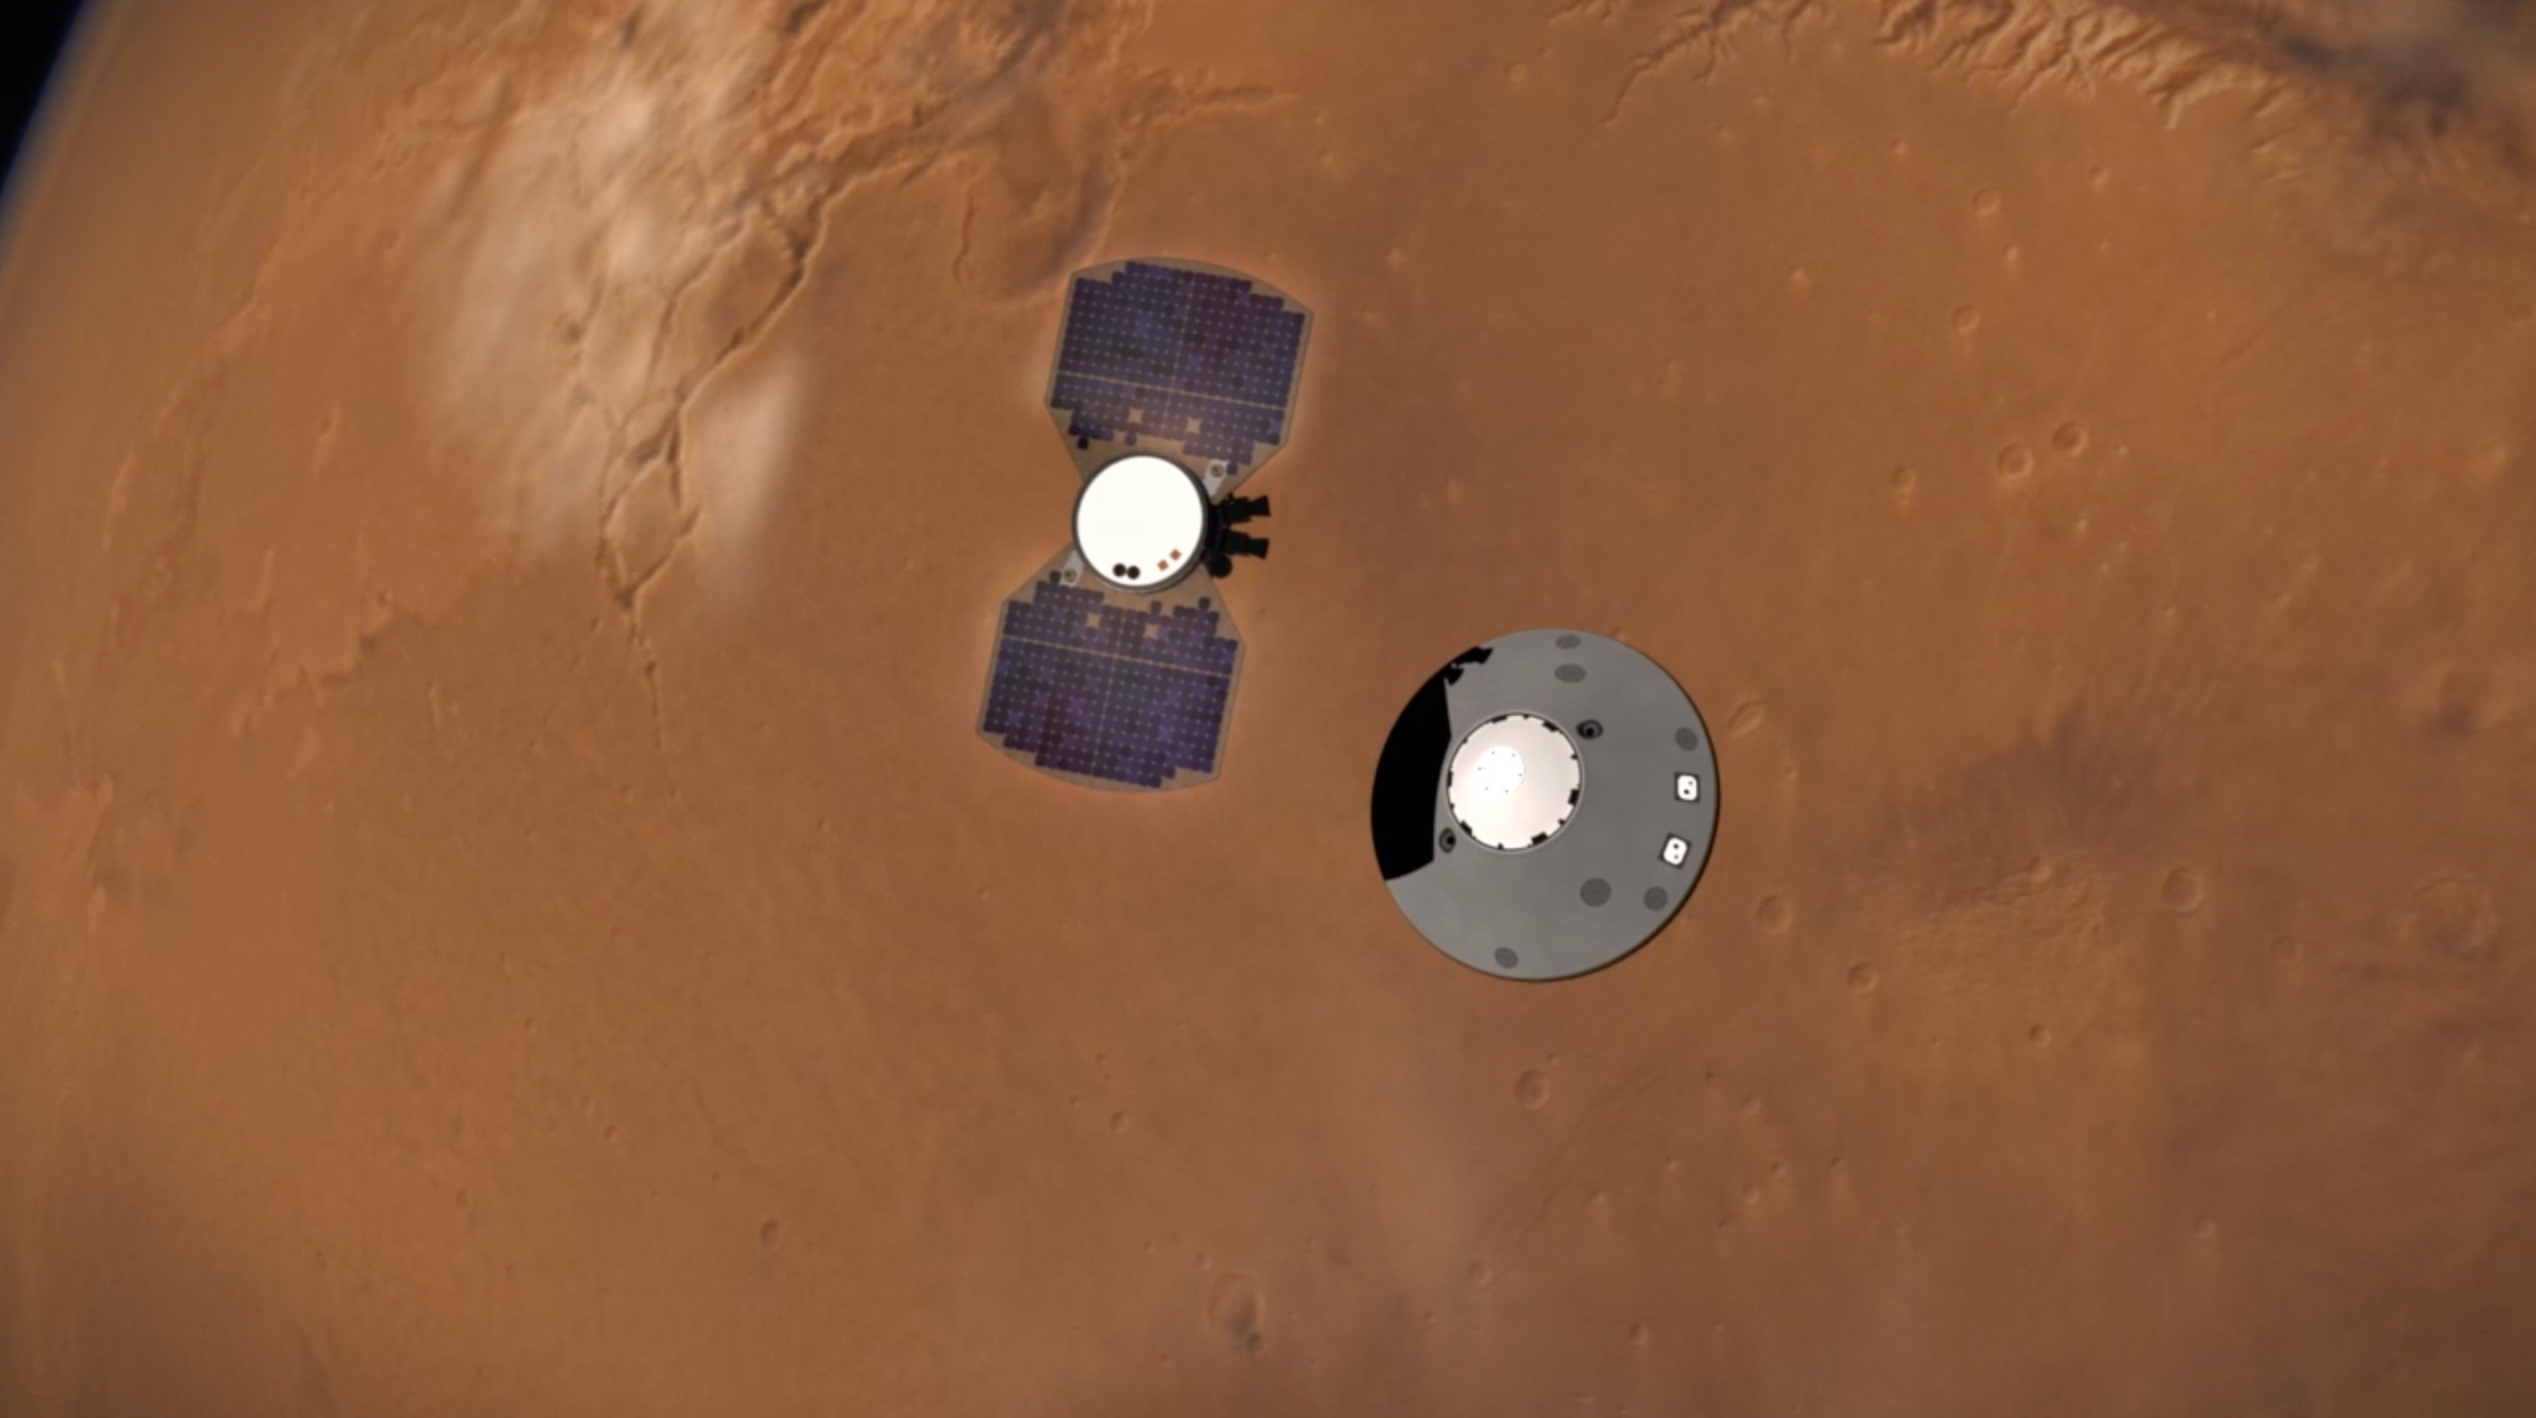 This illustration shows NASA's InSight lander separating from its cruise stage as it prepares to enter Mars' atmosphere. The InSight lander is on the right, tucked inside a protective heat shield and back shell. The cruise stage with solar panels is on the left.